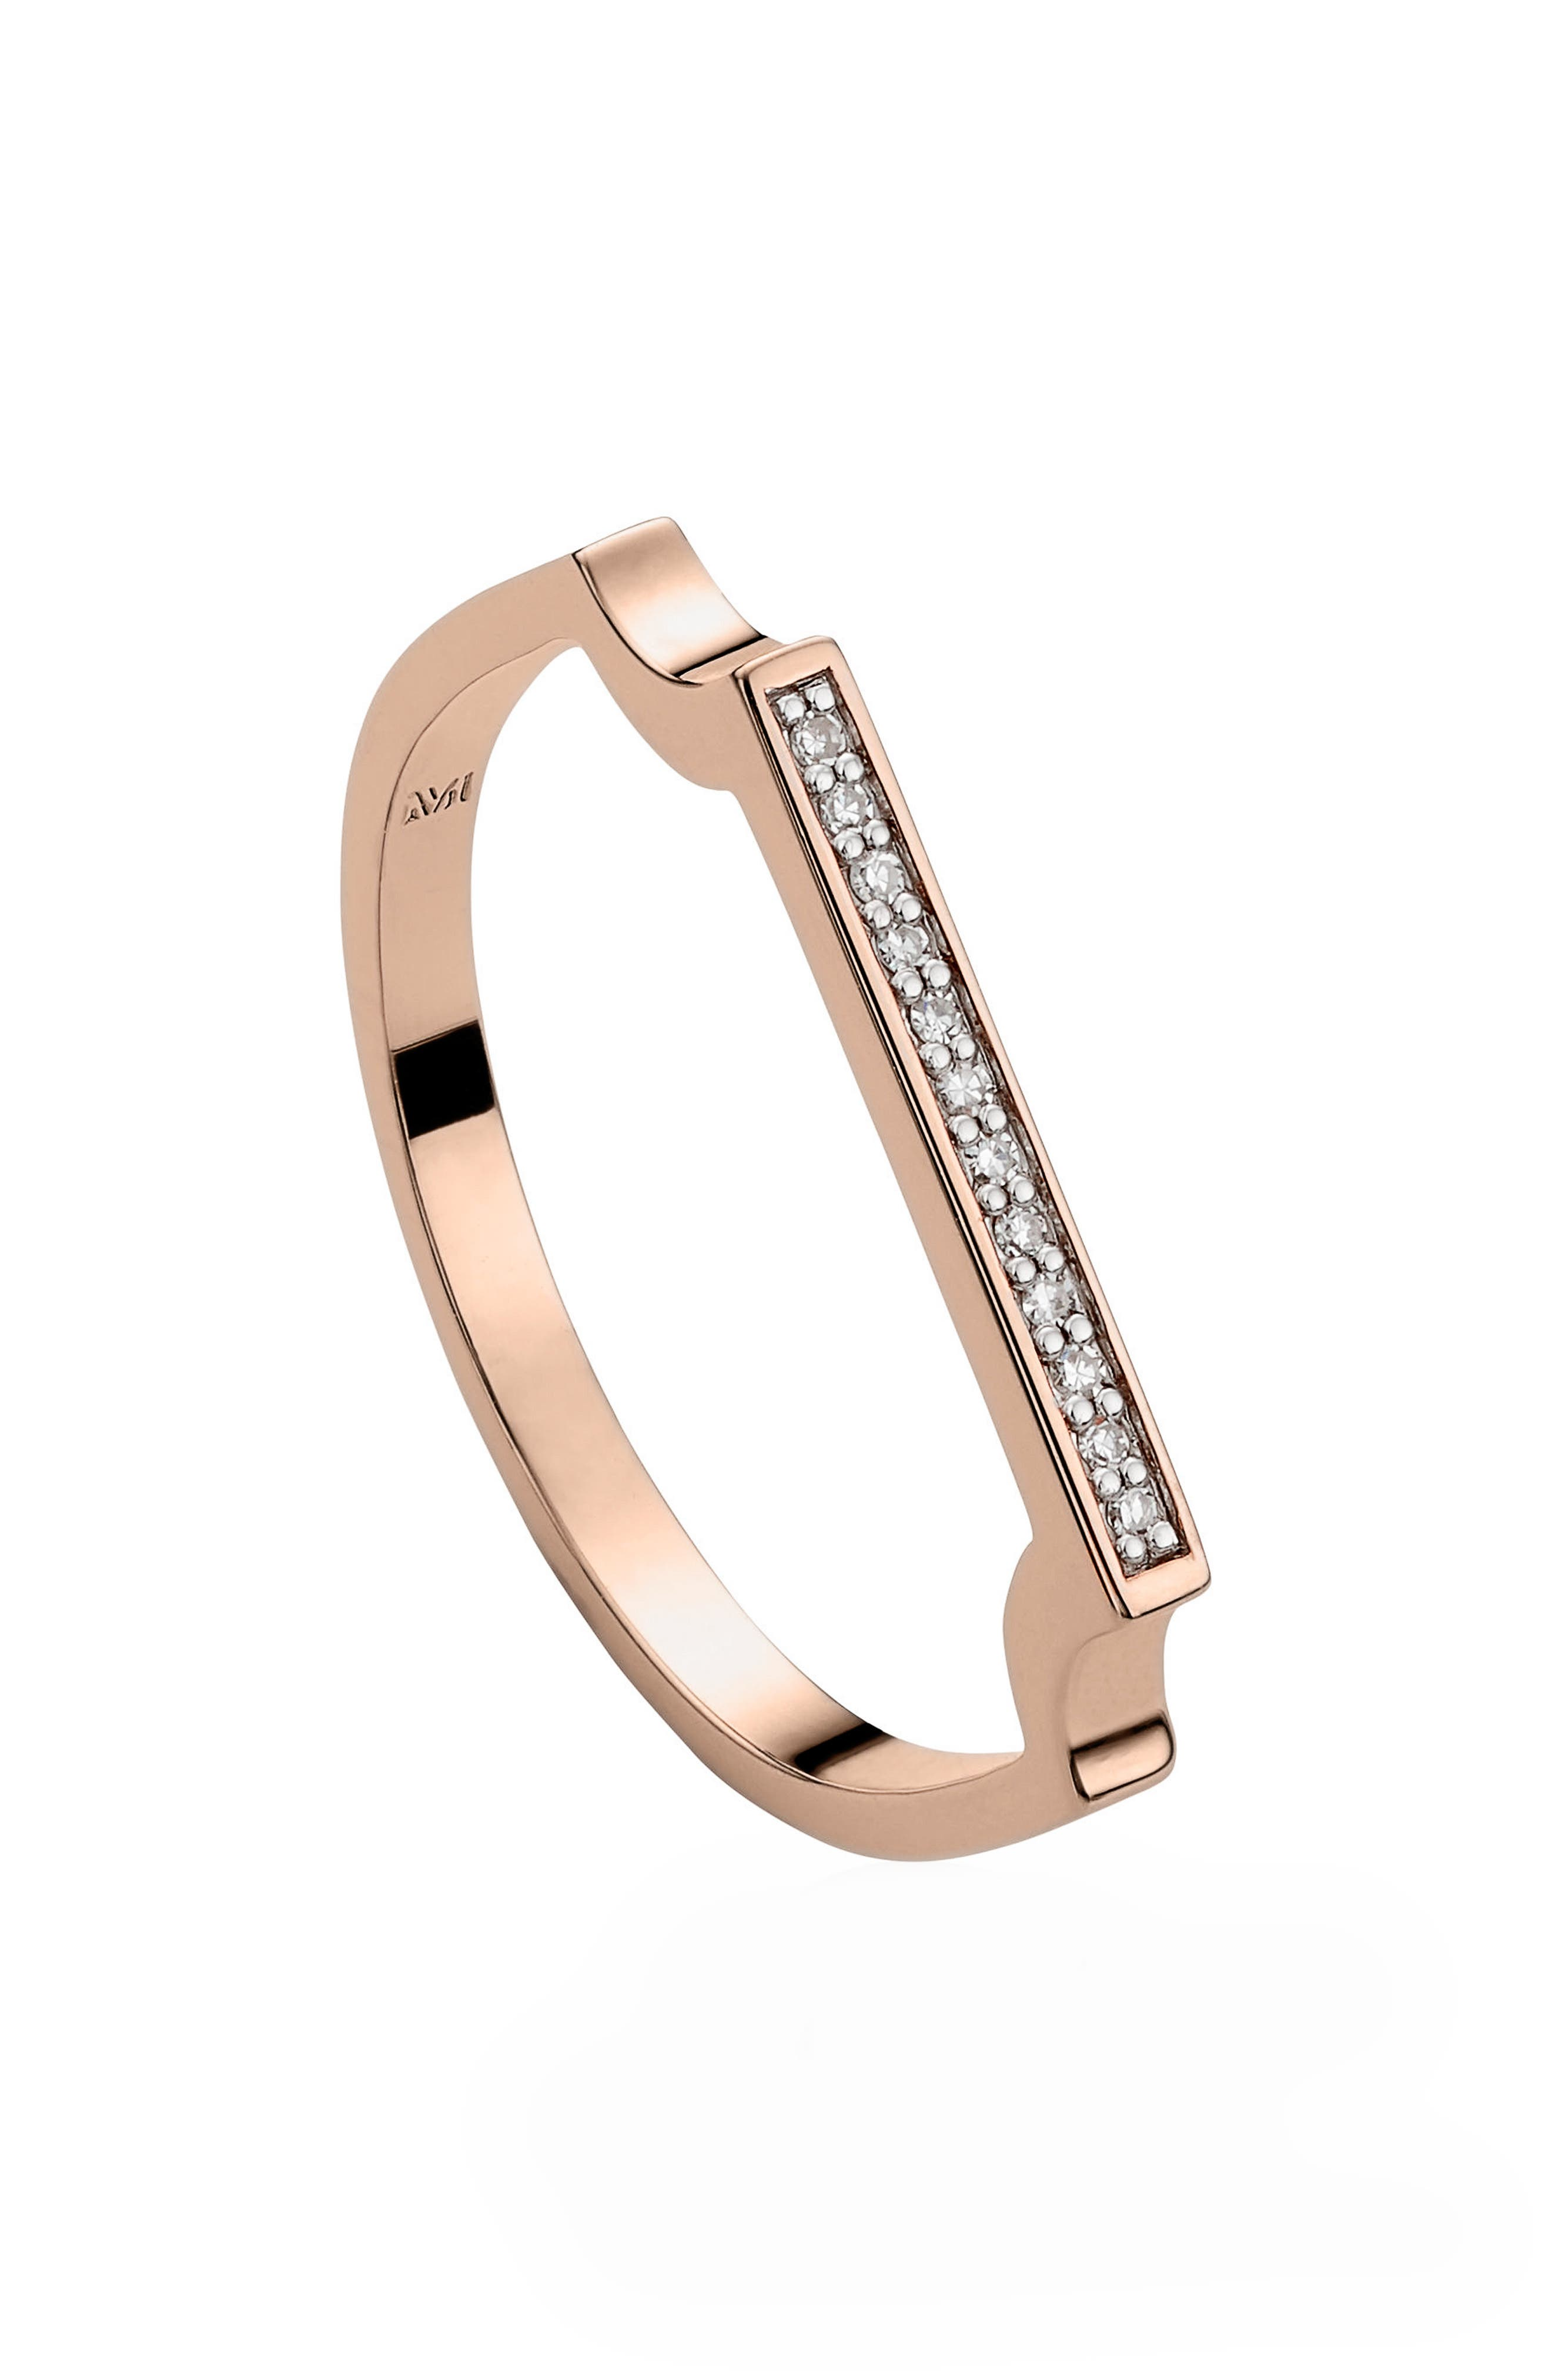 Signature Thin Diamond Ring,                             Alternate thumbnail 3, color,                             Rose Gold/ Diamond